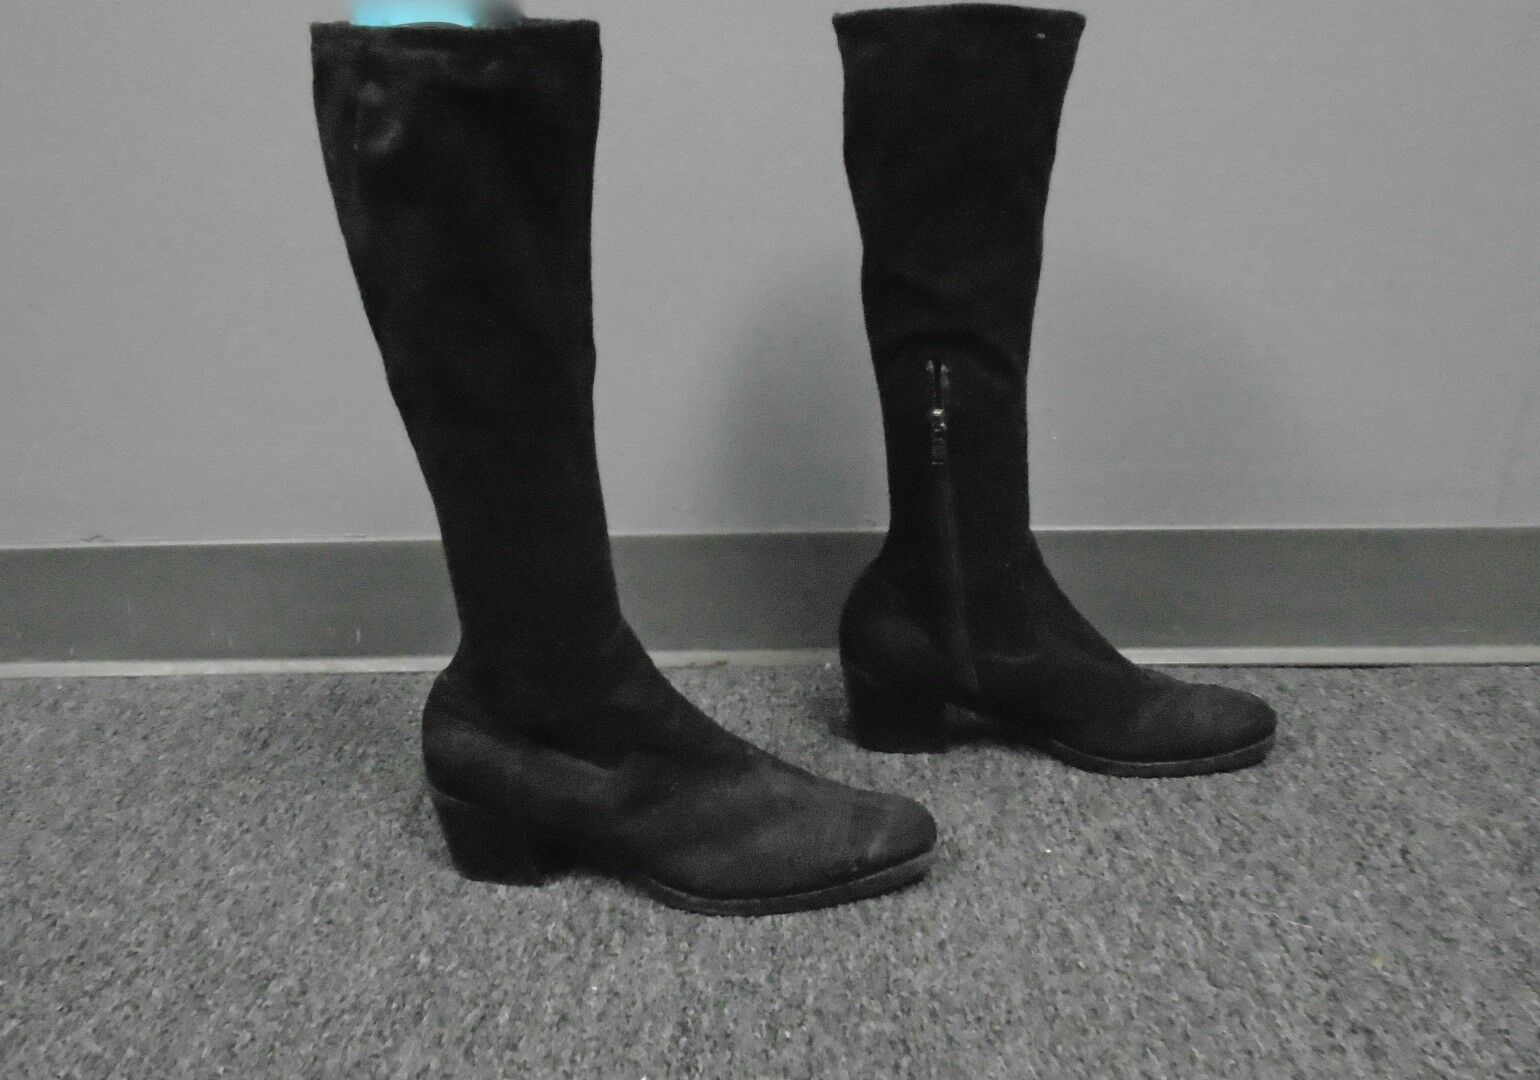 PRADA Black Suede Mid Calf Zip Up Embroidered Round Toe Boots Size 37.5 B3797